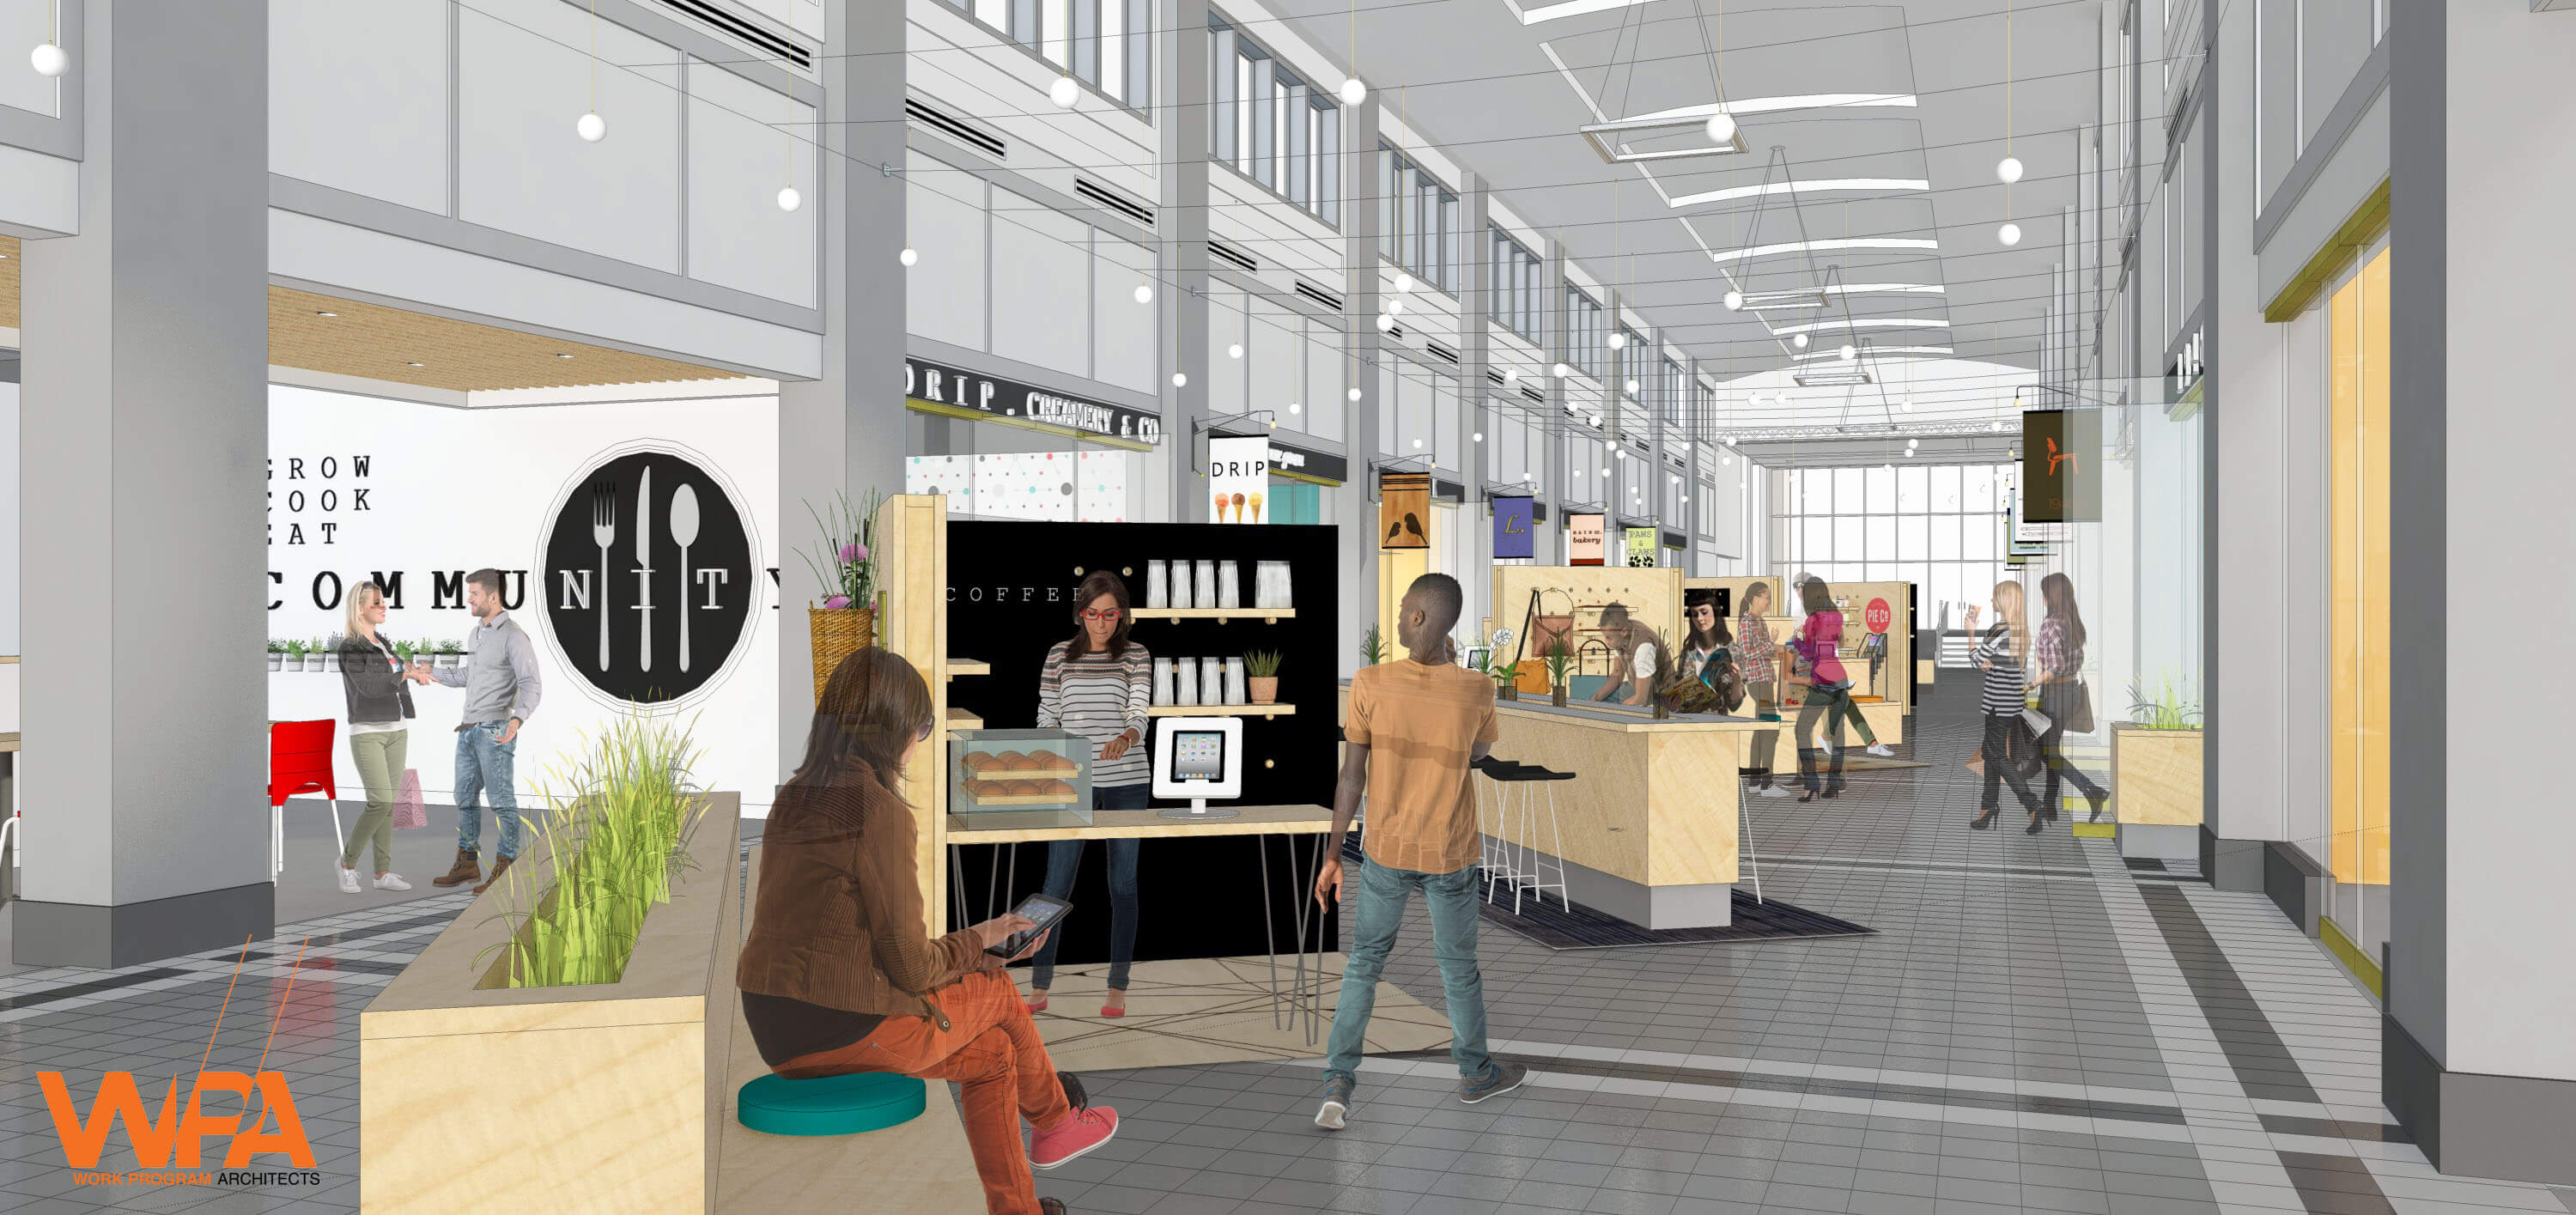 Vibrant Spaces Announces Selden Market